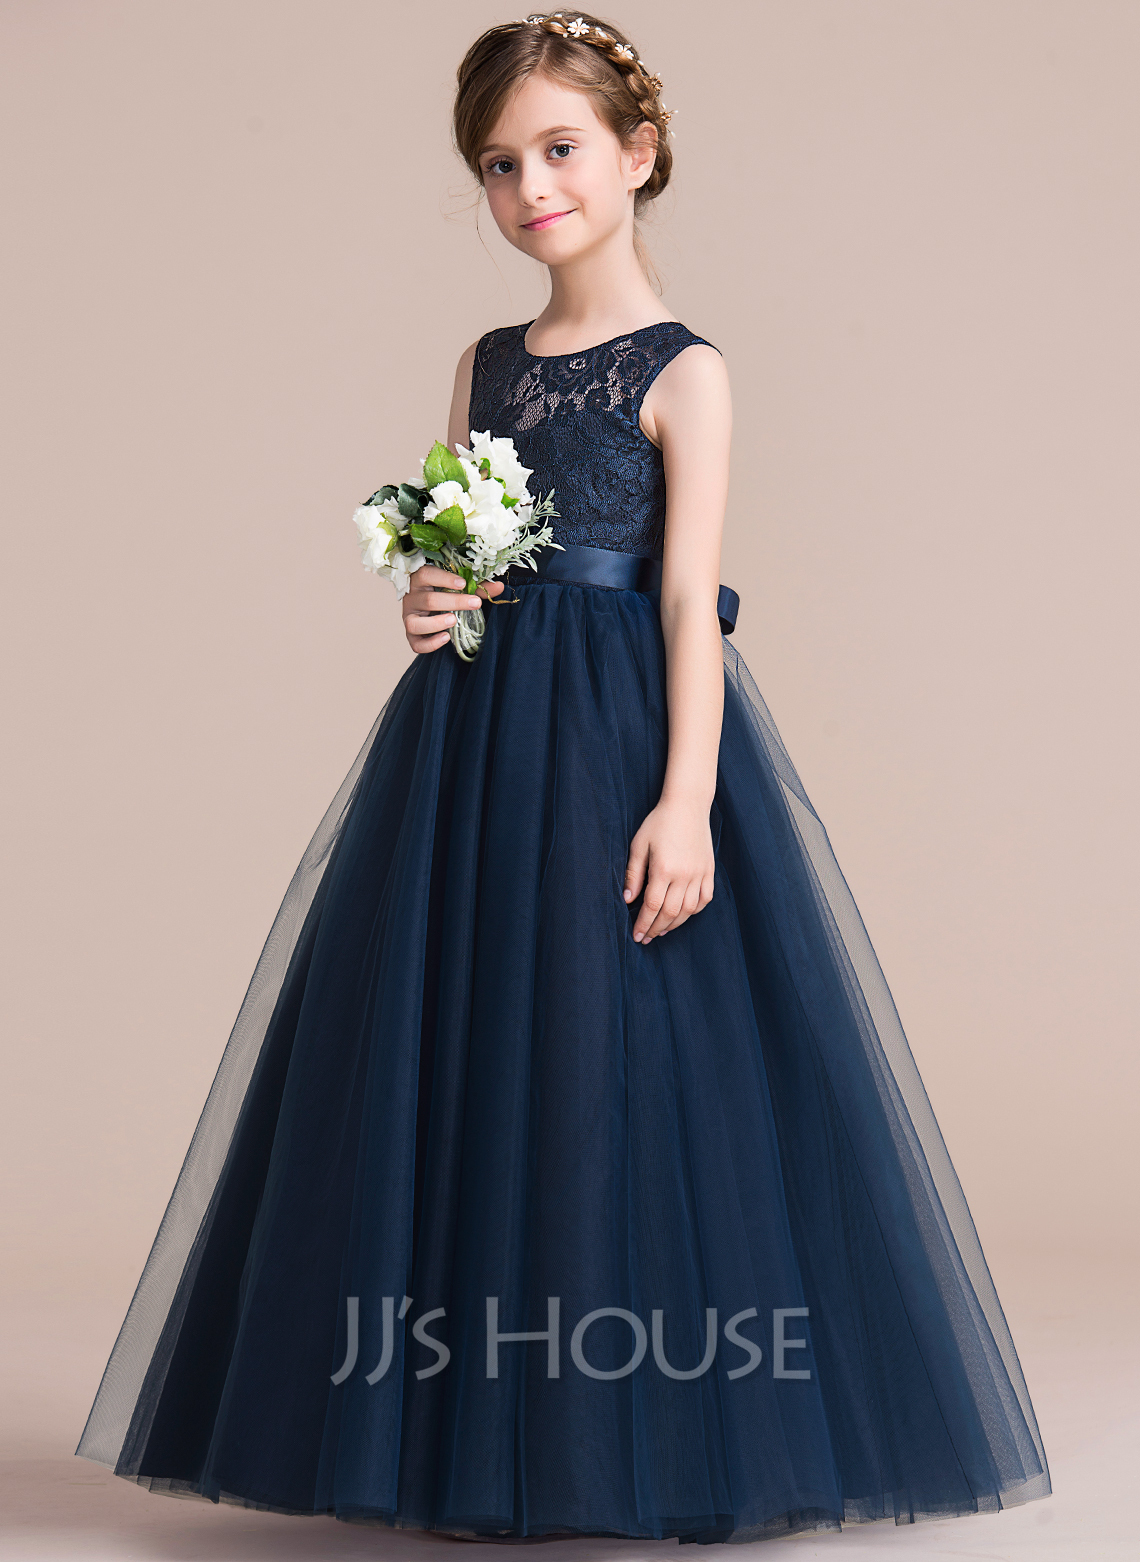 A lineprincess floor length flower girl dress satintullelace a lineprincess floor length flower girl dress satintulle loading zoom izmirmasajfo